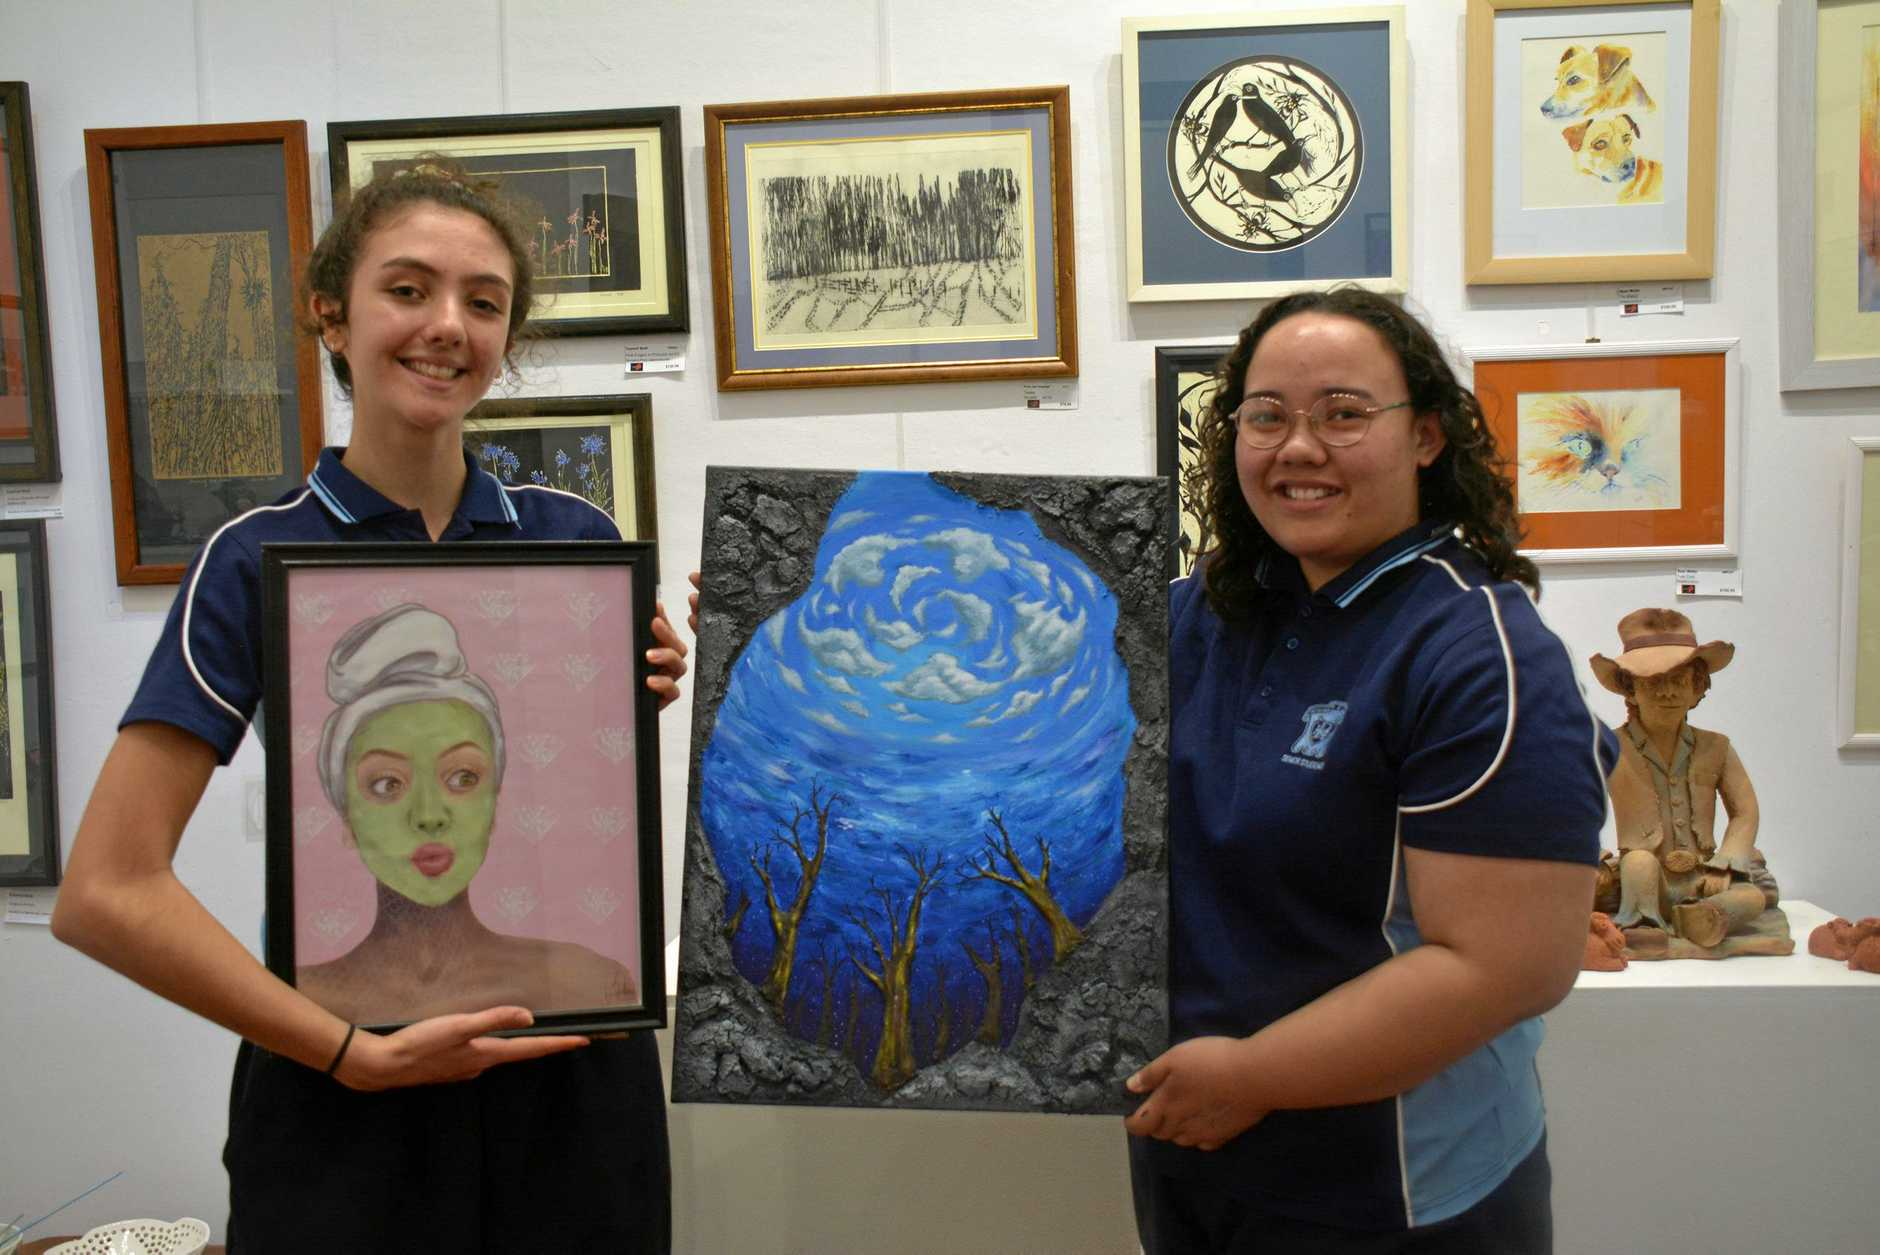 YOUNG ARTISTS: Amber Fitz-Herbert and Noelana Rossow with their artworks.